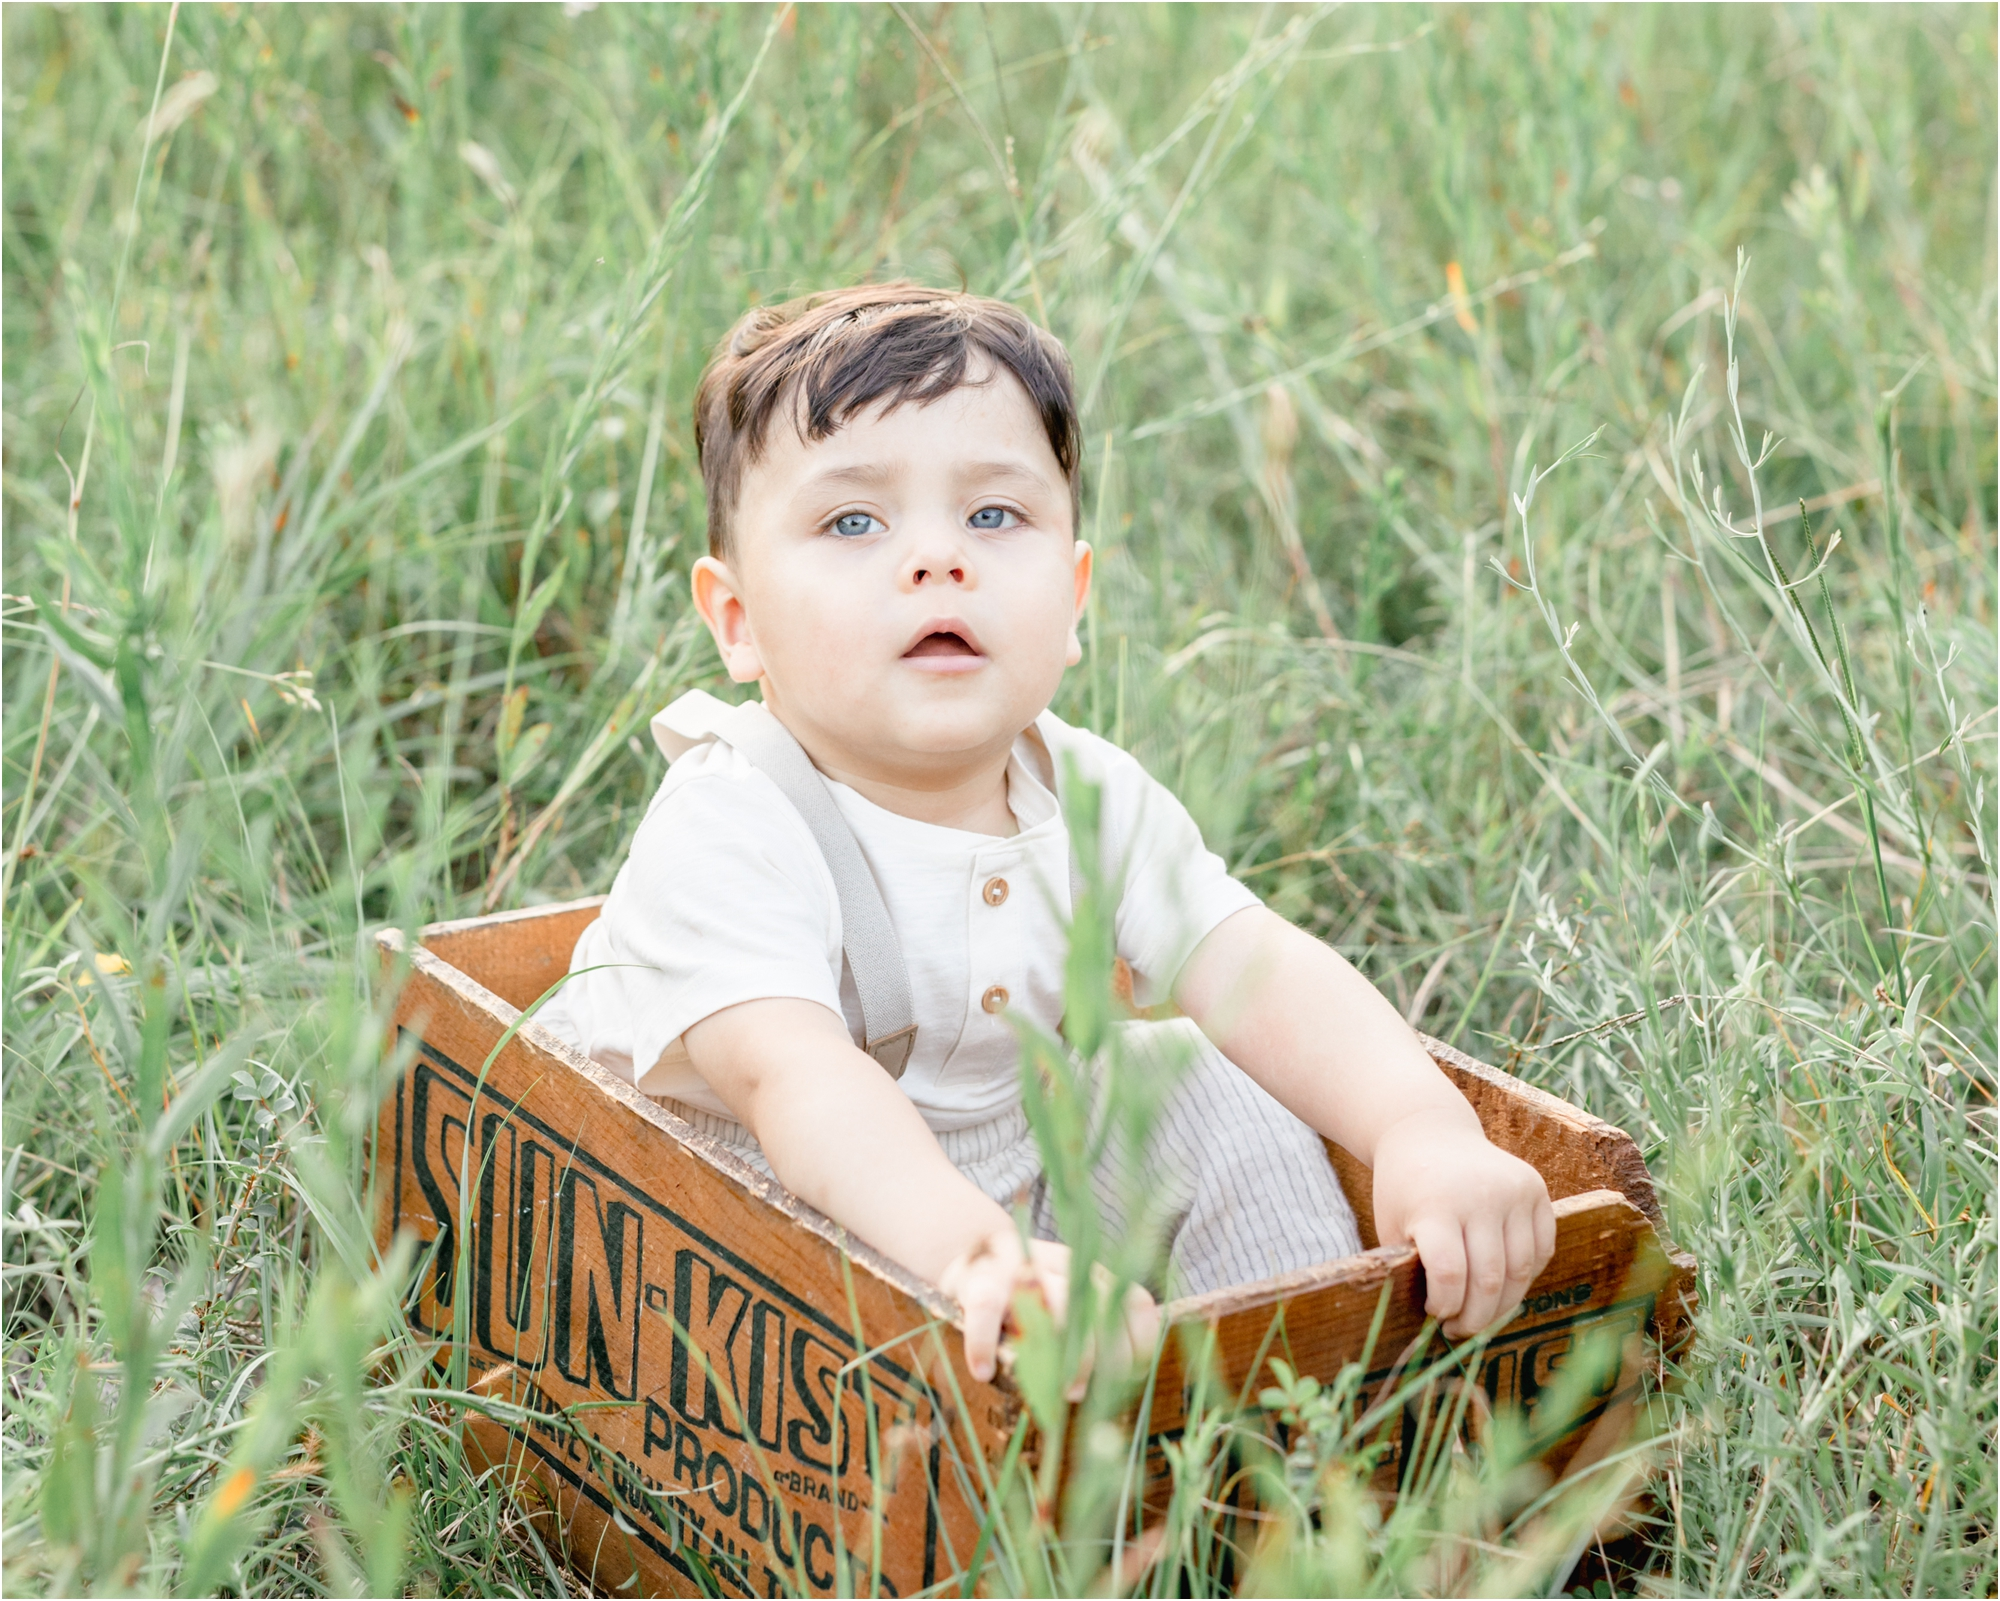 Toddler sitting in wood crate among the tall grass. Photo by Lifetime of Clicks Photography.